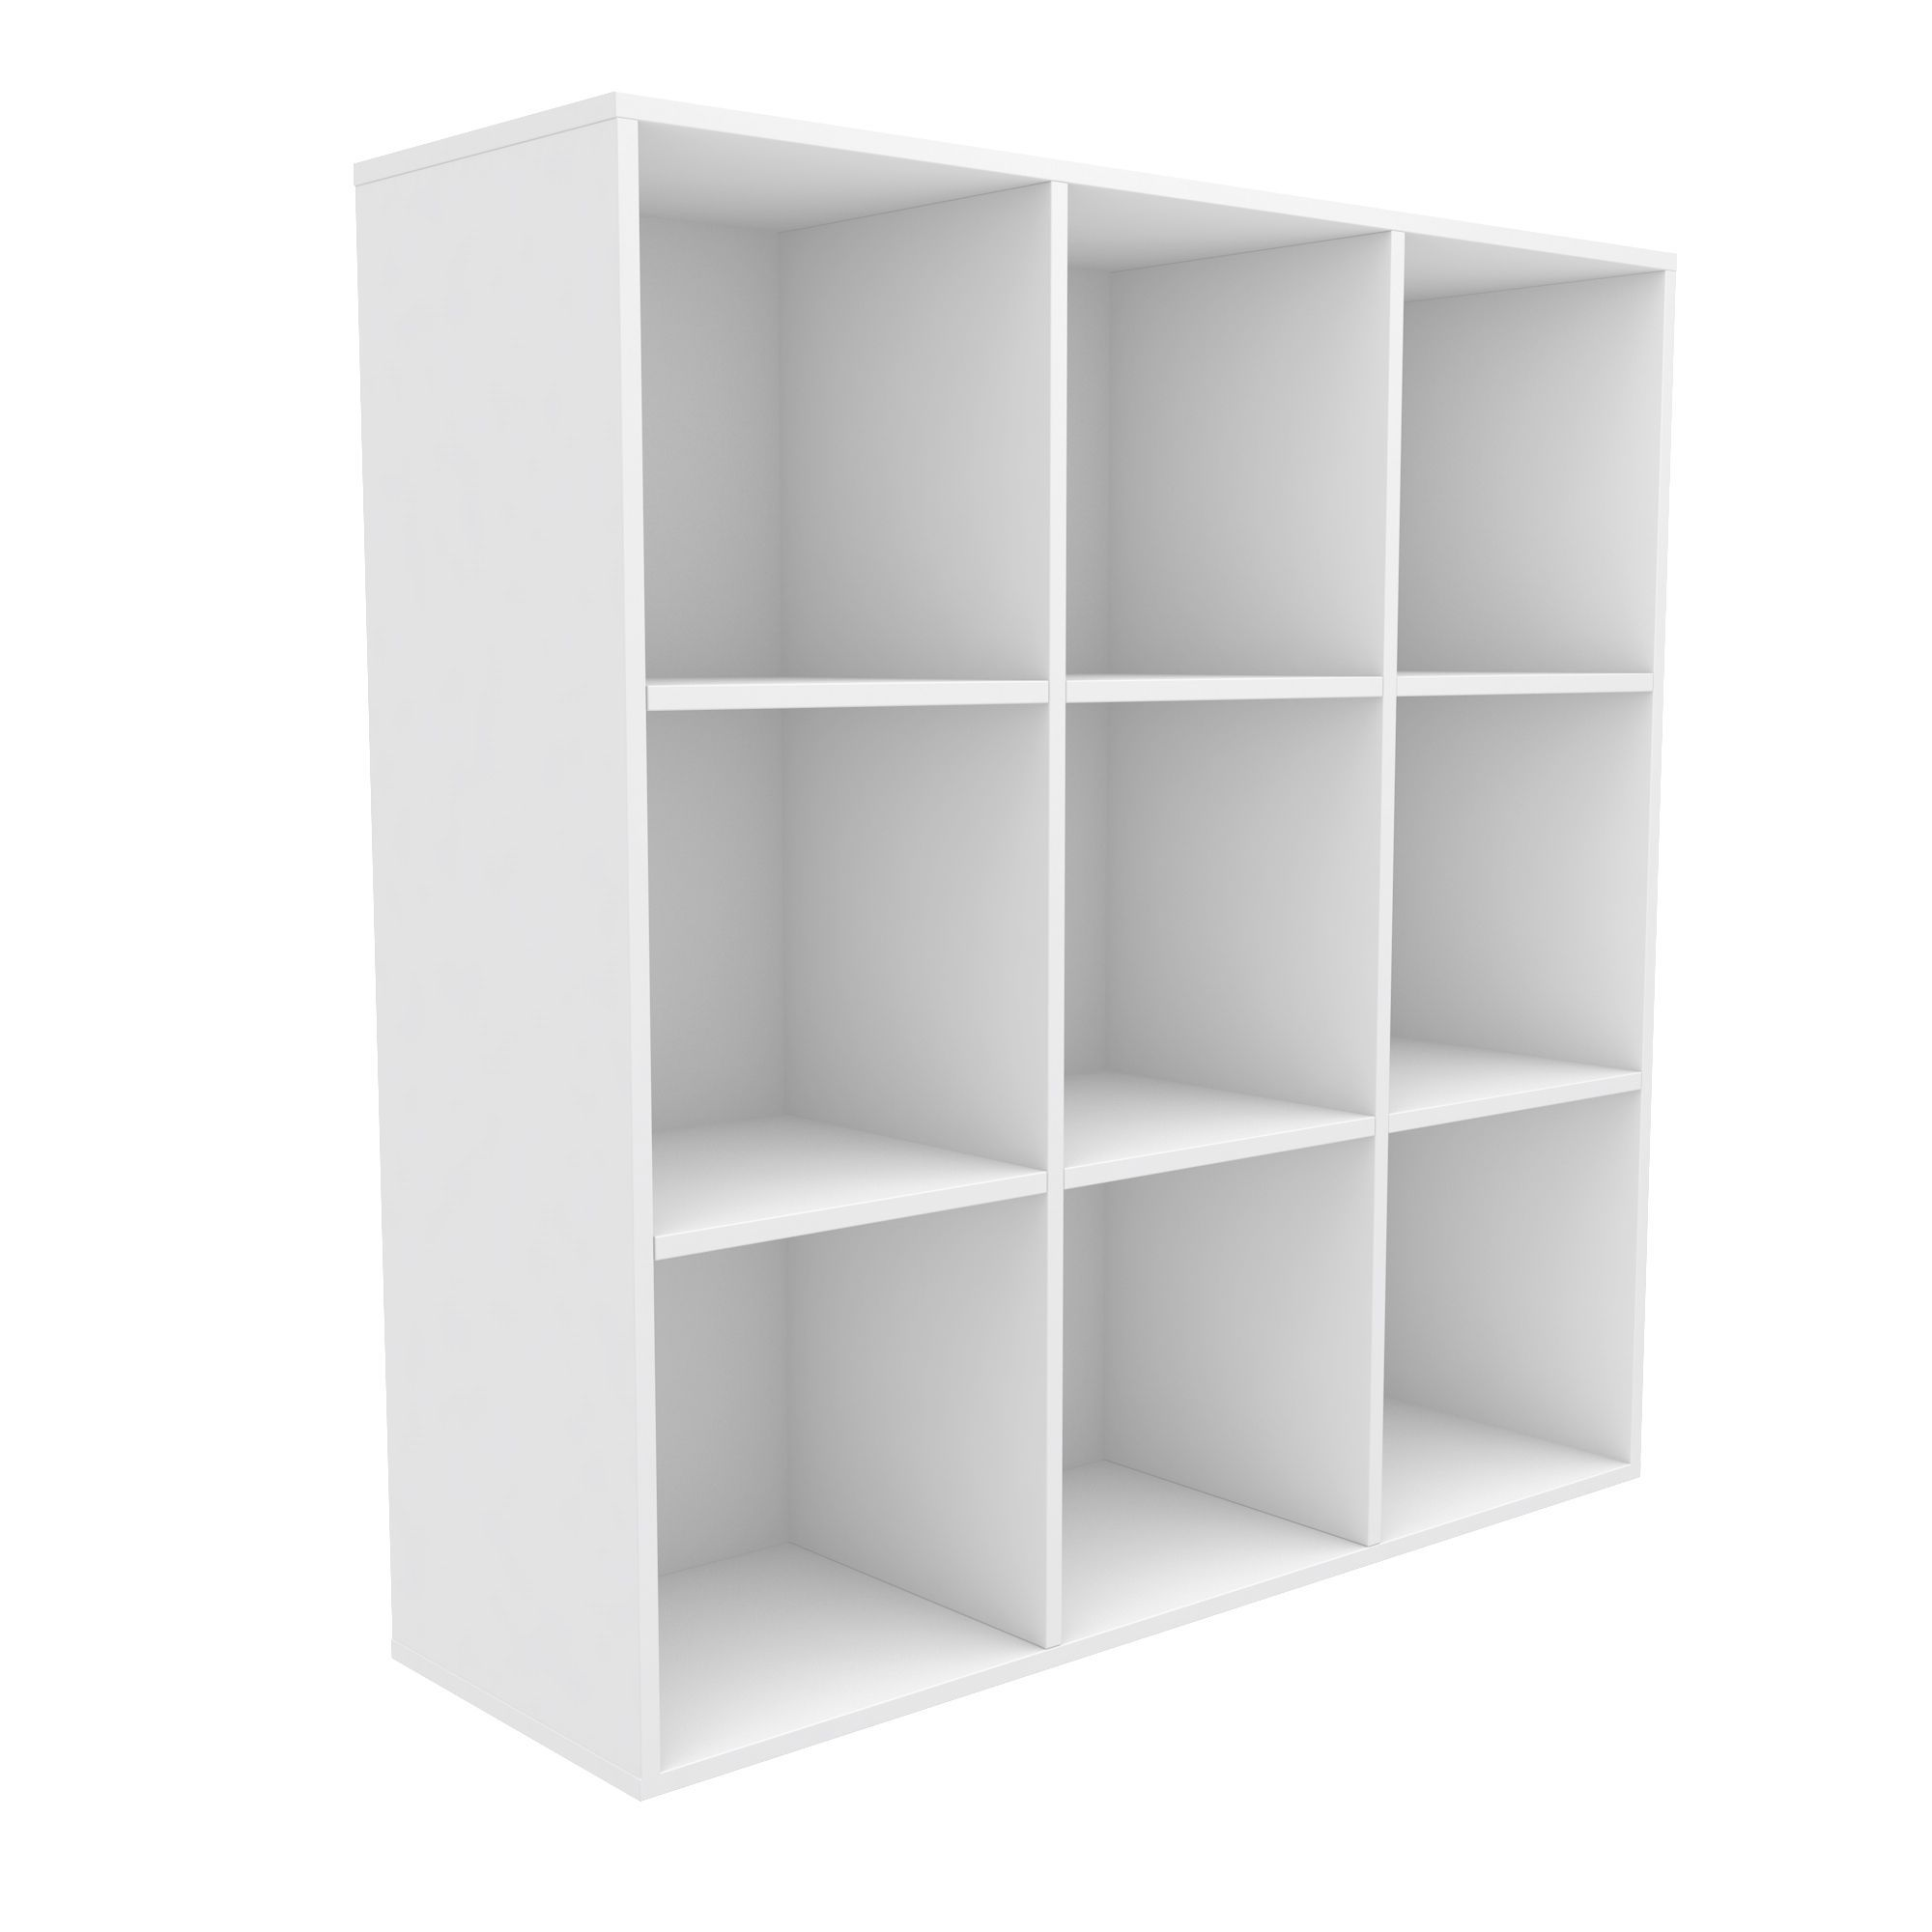 Bathroom Cabinets Uk Bq Form Konnect White 9 Cube Shelving Unit H1032mm W1032mm